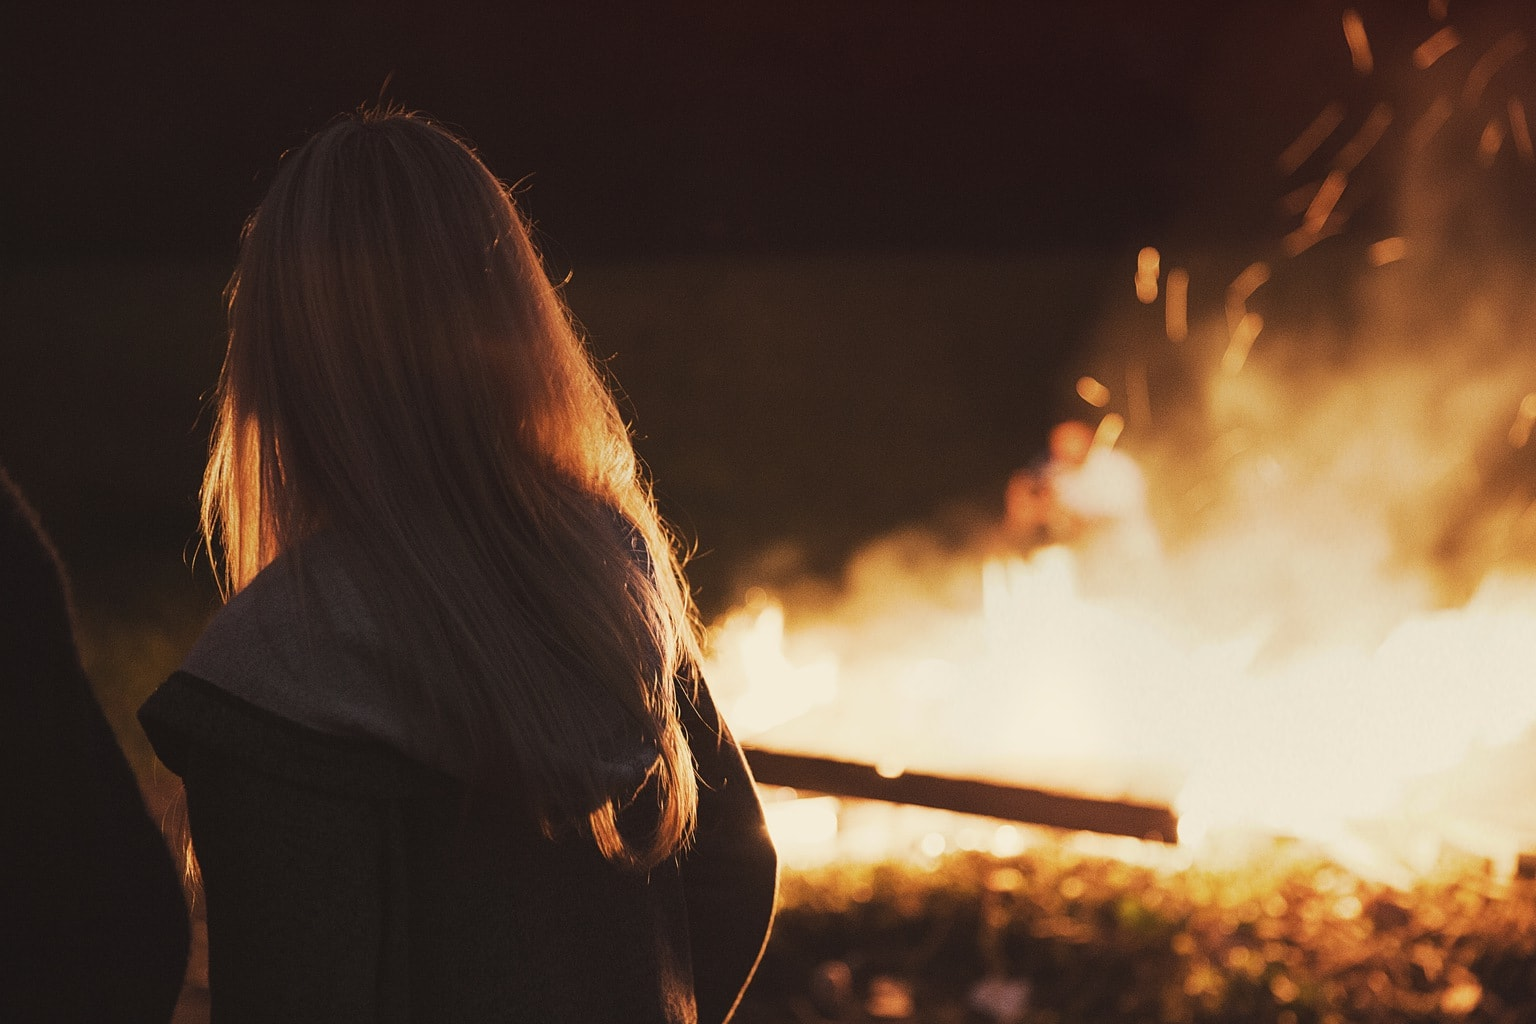 Woman in front of a fire